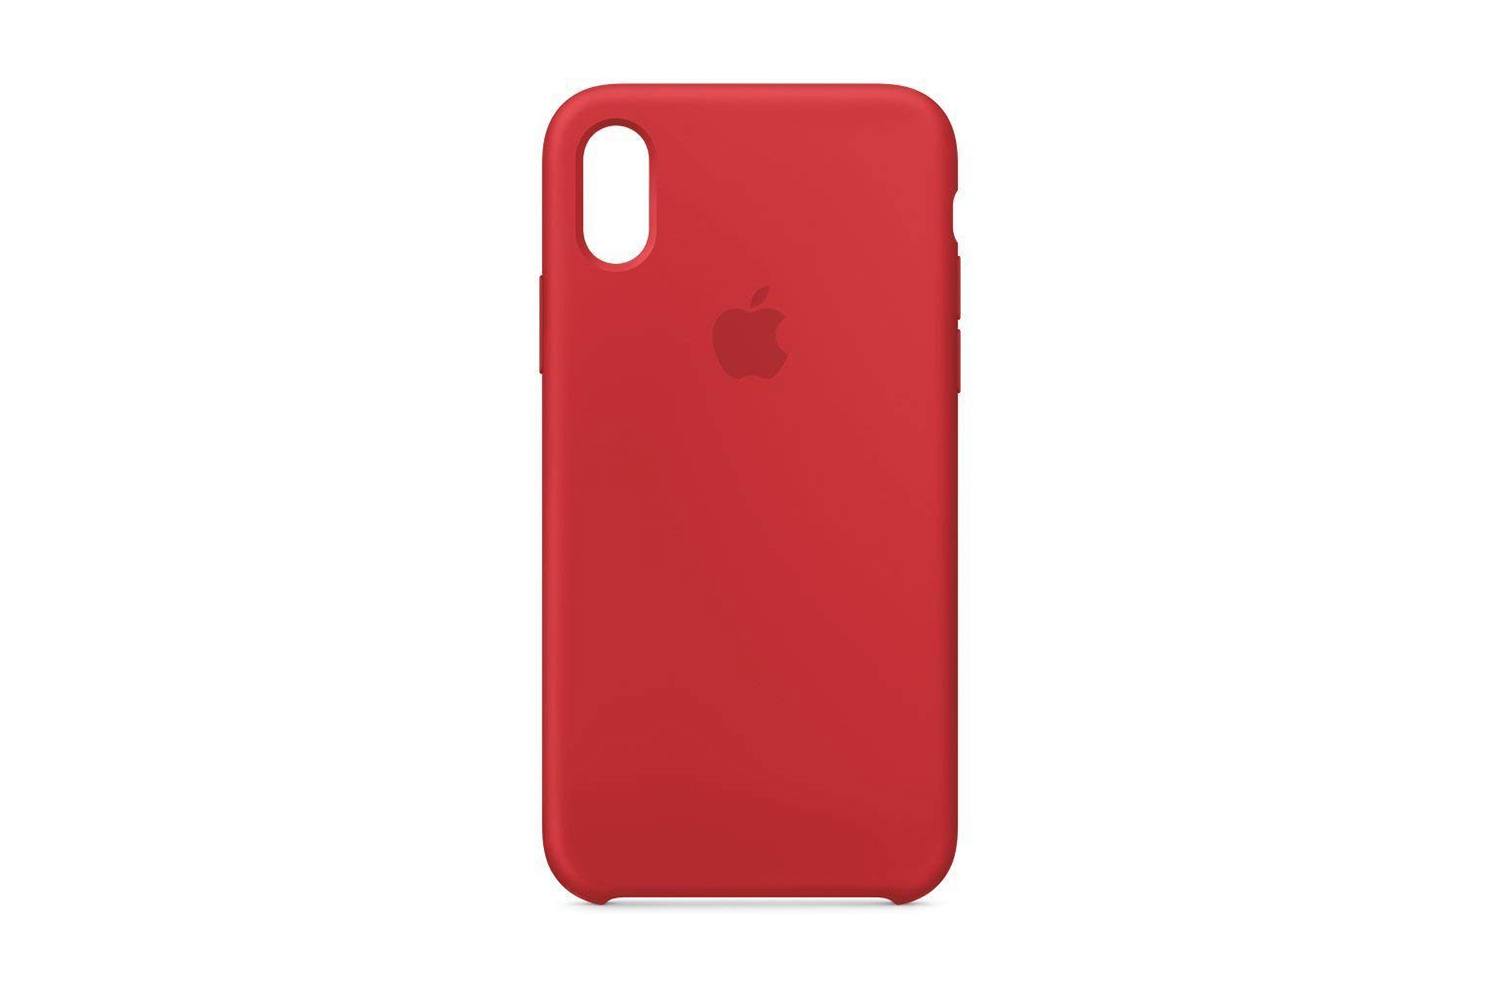 Apple's iPhone X silicone cases get a rare discount on Amazon